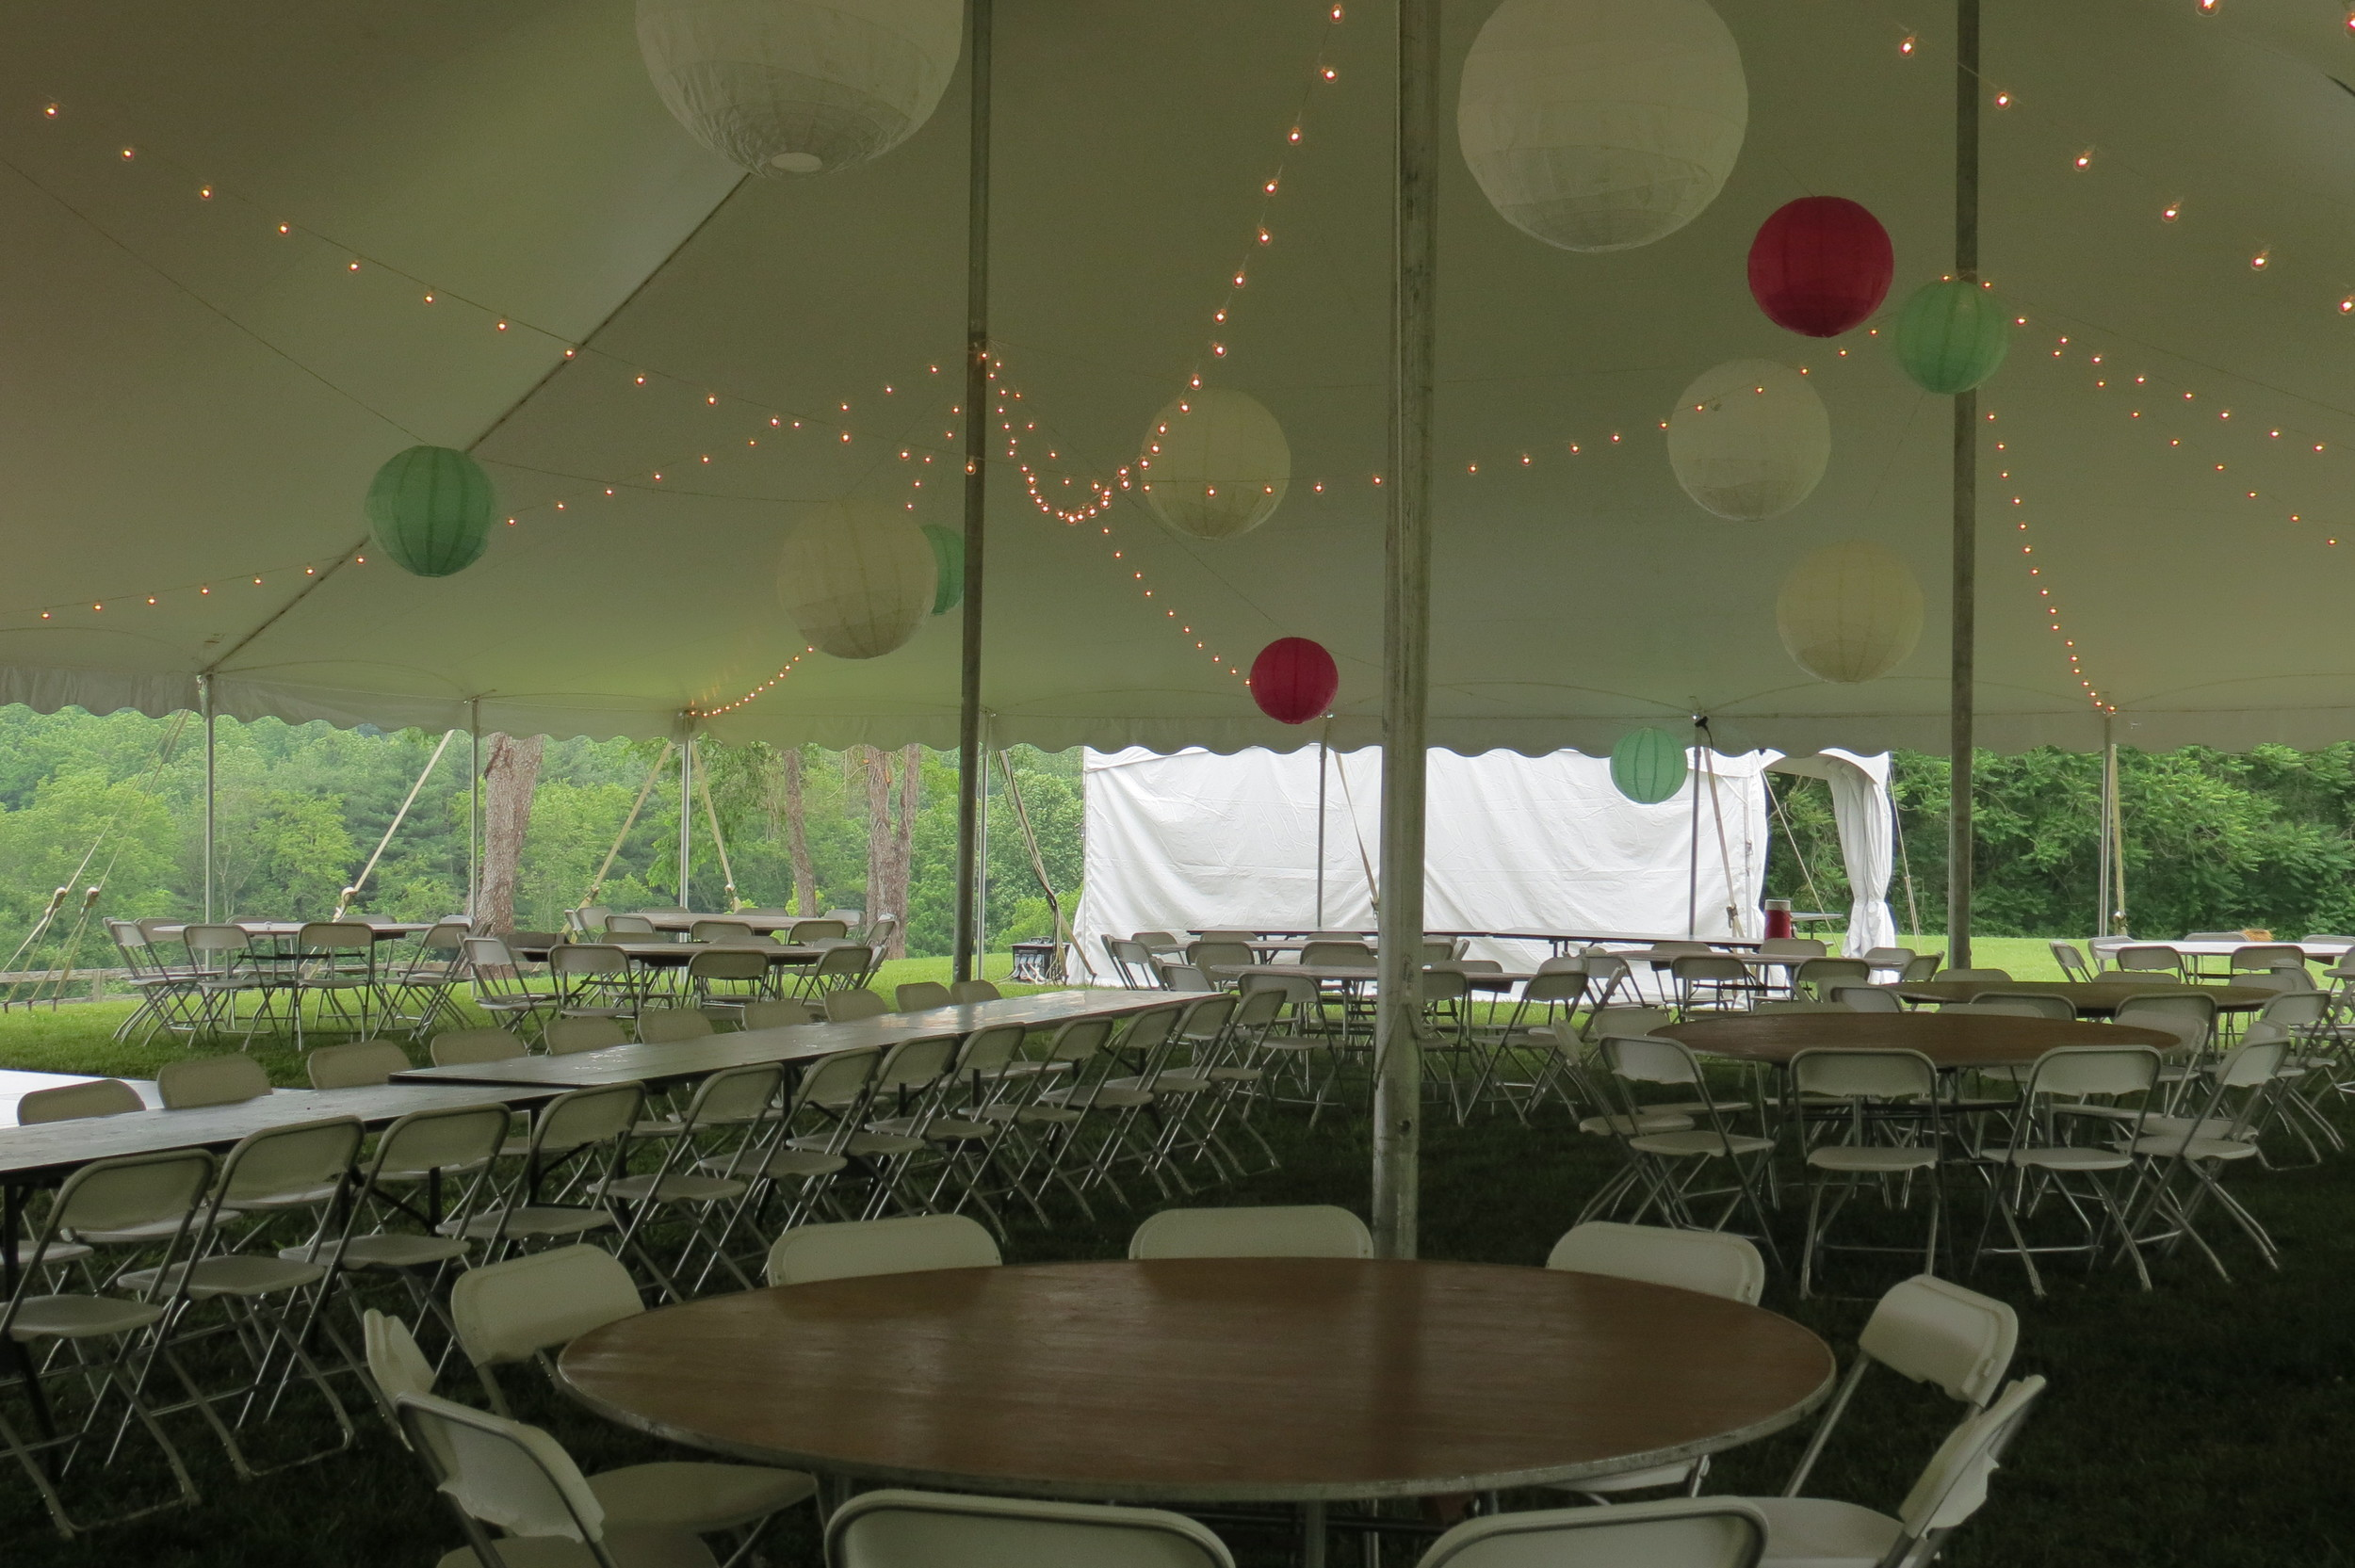 Party rentals in Carlisle, PA